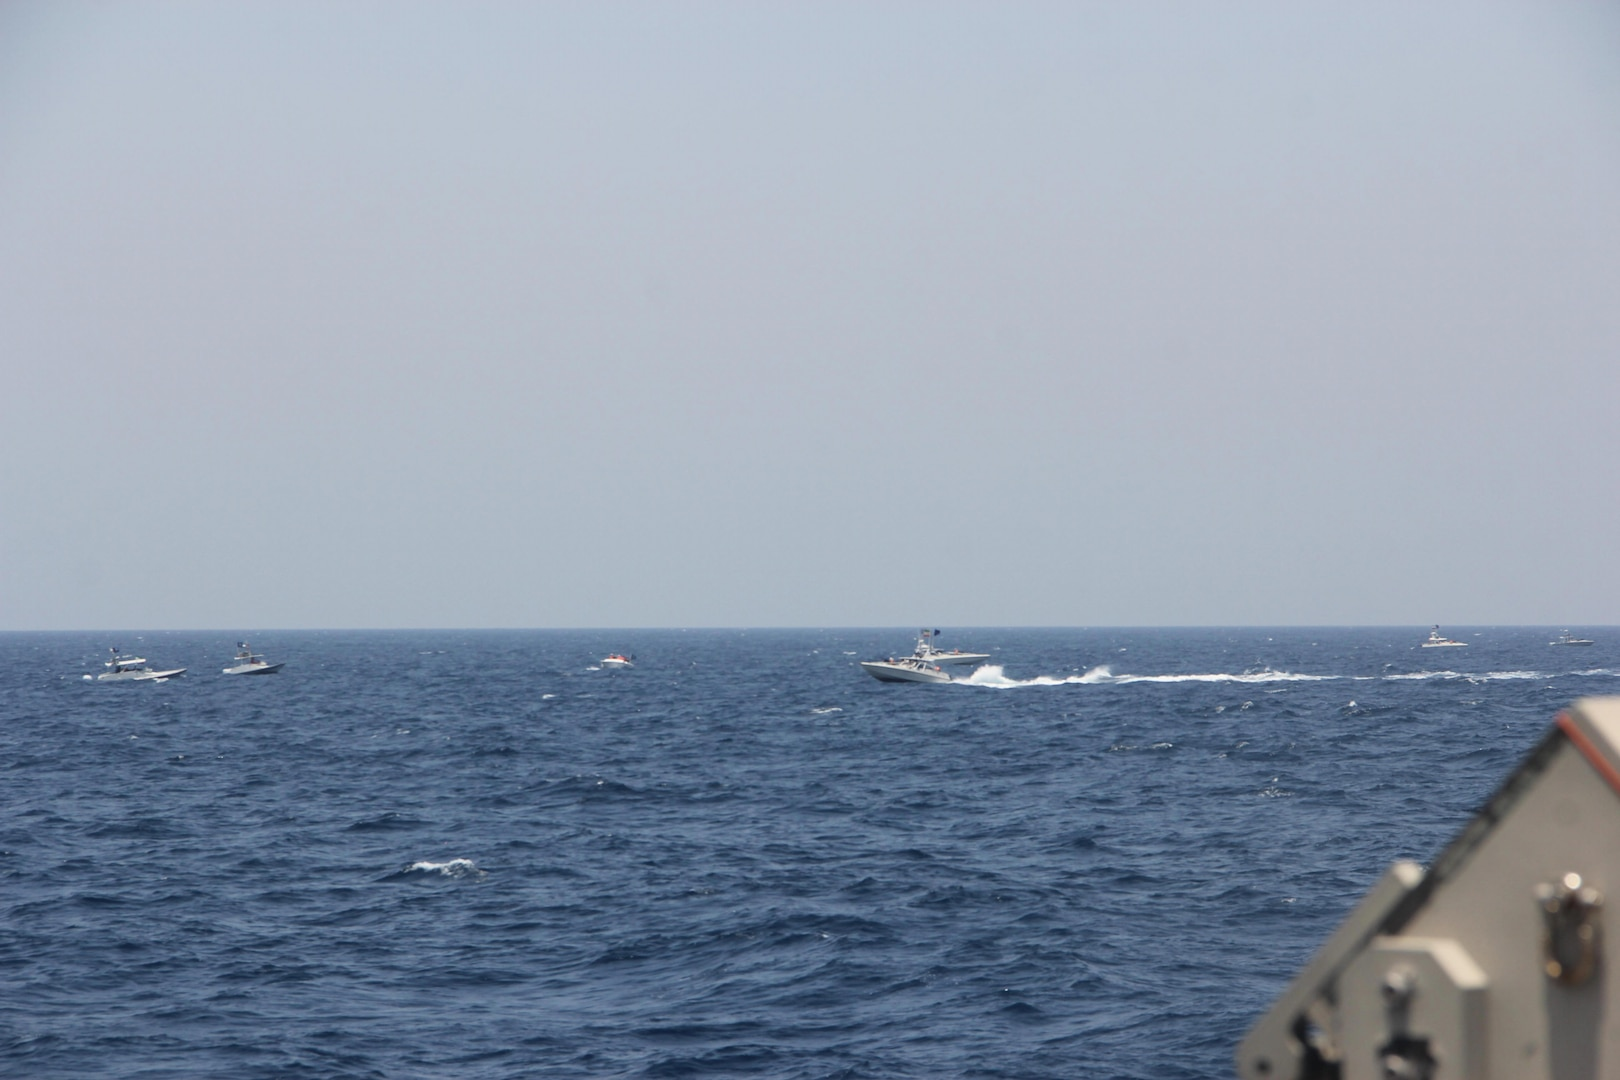 STRAIT OF HORMUZ (May 10, 2021) Two Iranian Islamic Revolutionary Guard Corps Navy (IRGCN) fast in-shore attack craft (FIAC), a type of speedboat armed with machine guns, conducted unsafe and unprofessional maneuvers while operating in close proximity to U.S. naval vessels transiting the Strait of Hormuz, May 10.  U.S. forces exercised lawful defensive measure after the IRGCN vessels ignored repeated verbal and acoustic warning and closed toward Maui at a high speed and close distance with weapons uncovered and manned. (U.S. Navy photo)